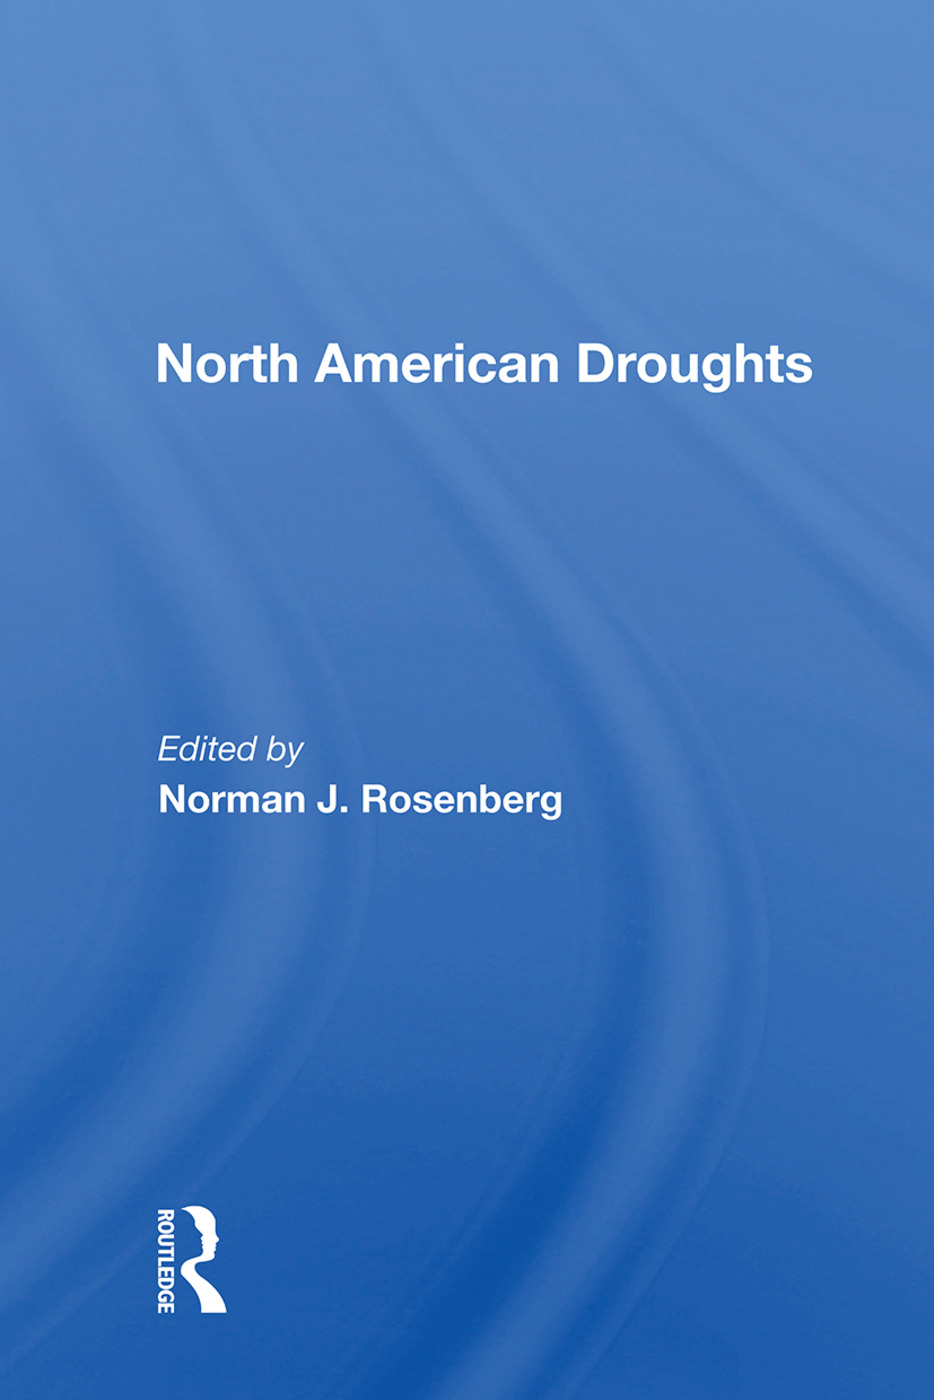 North American Droughts